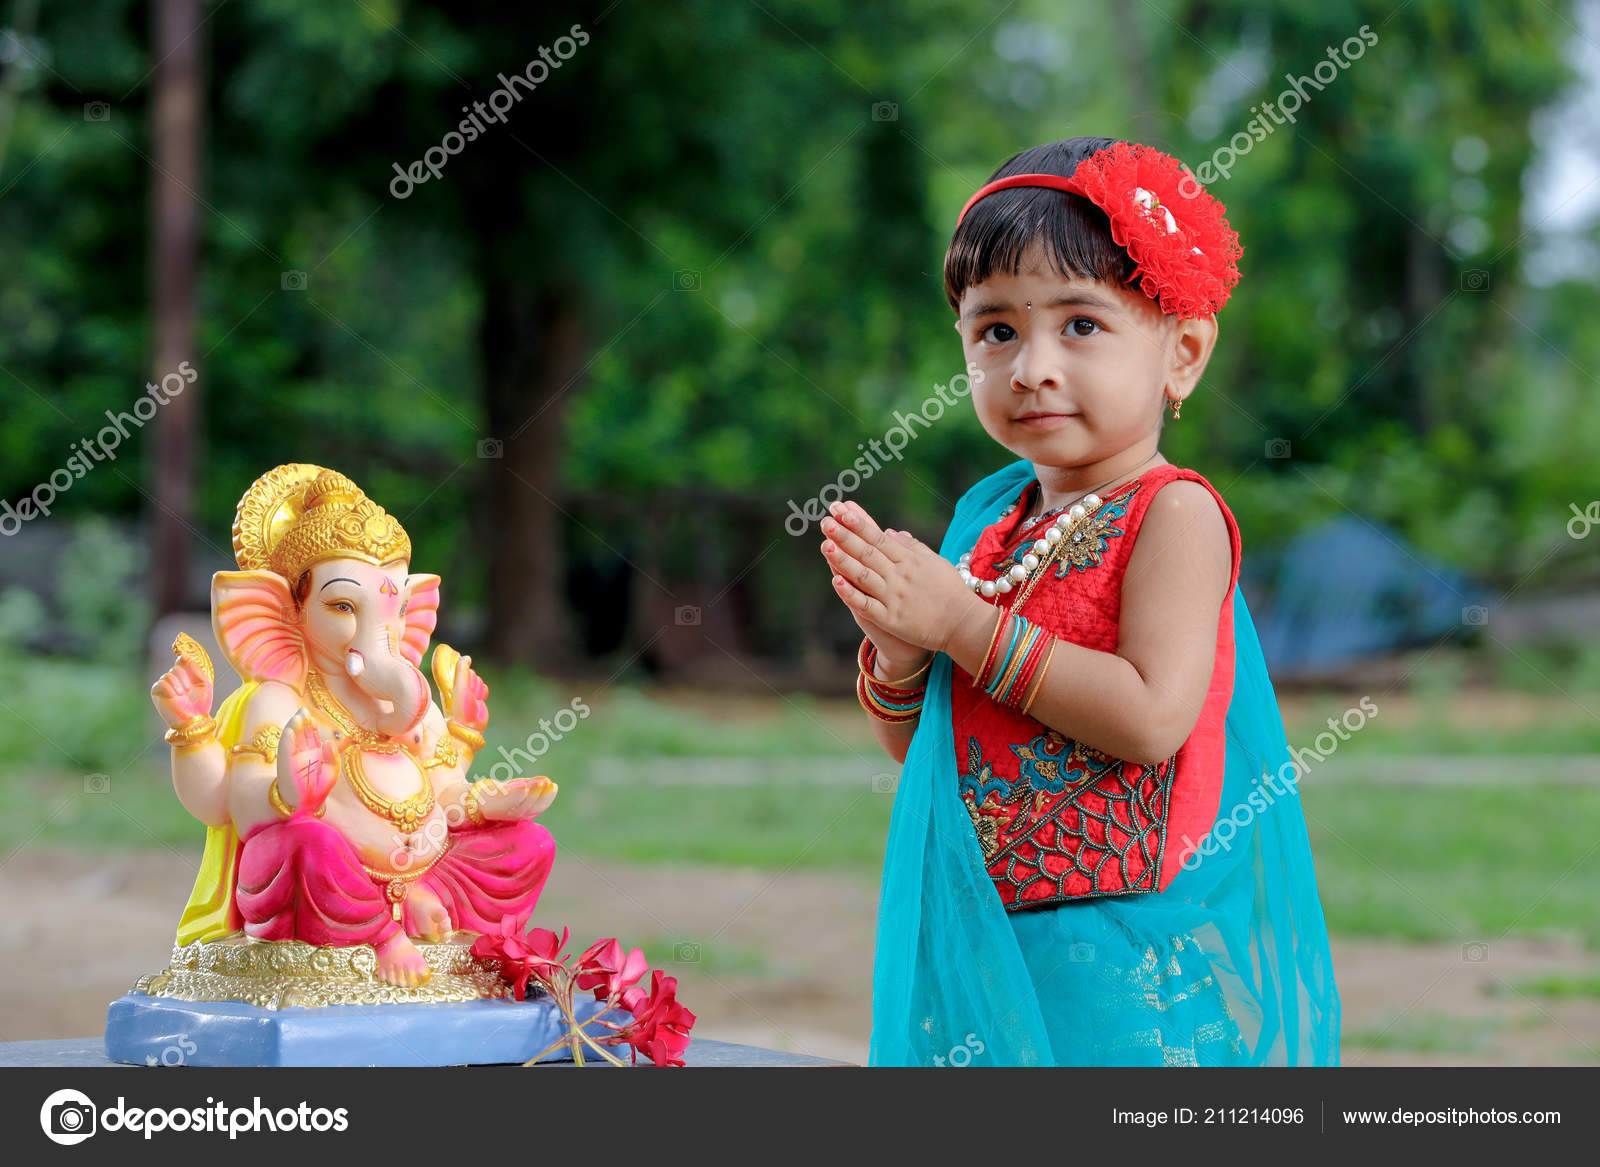 2e1a205eac Little Indian Girl Child Lord Ganesha Praying Indian Ganesh Festival —  Stock Photo